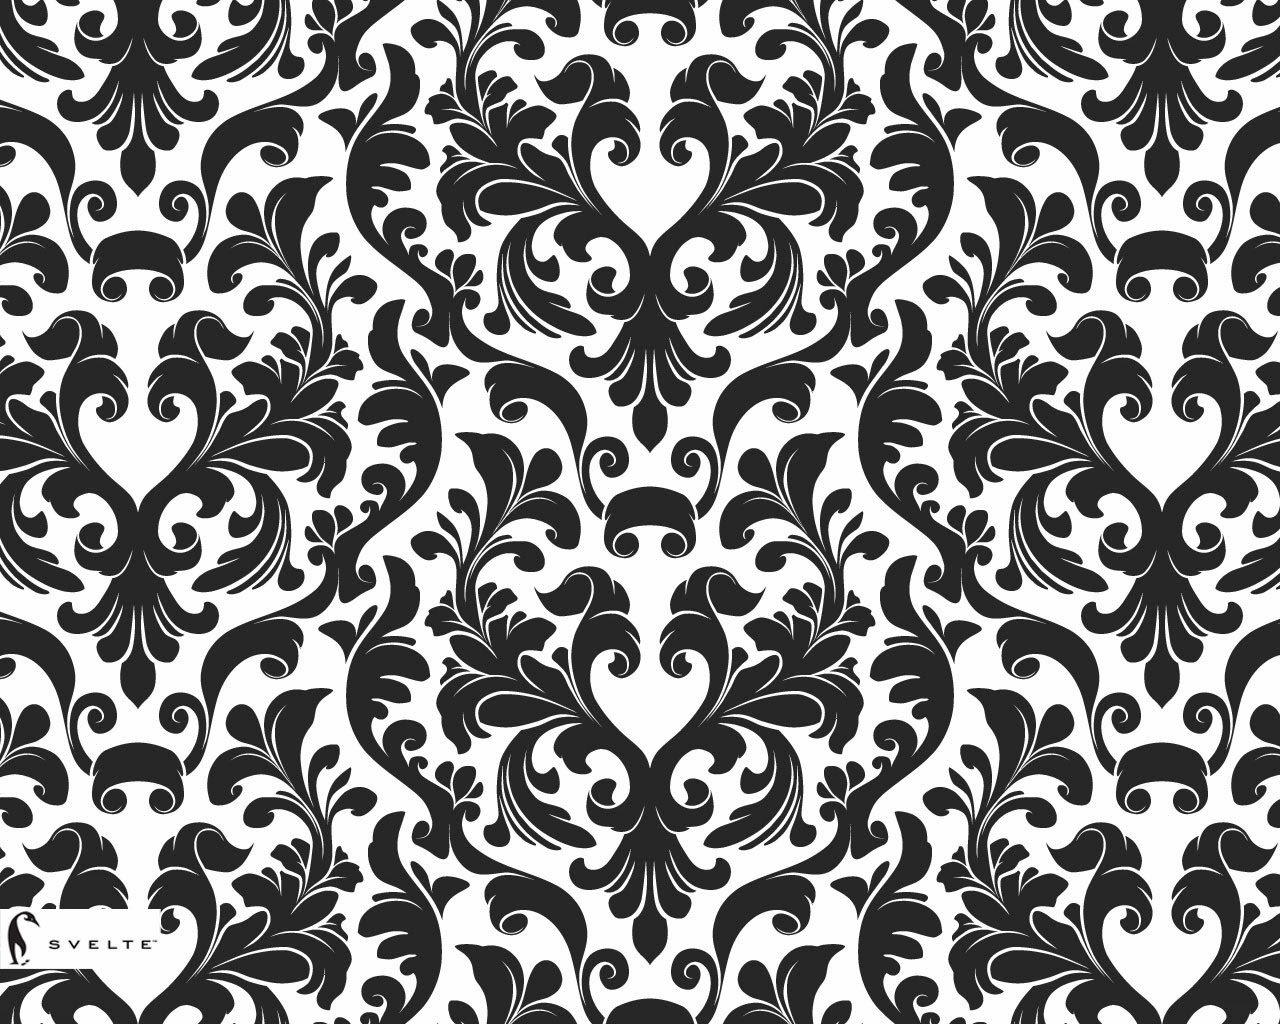 Black And White Damask Patterns Wallpaper black and white 1280x1024